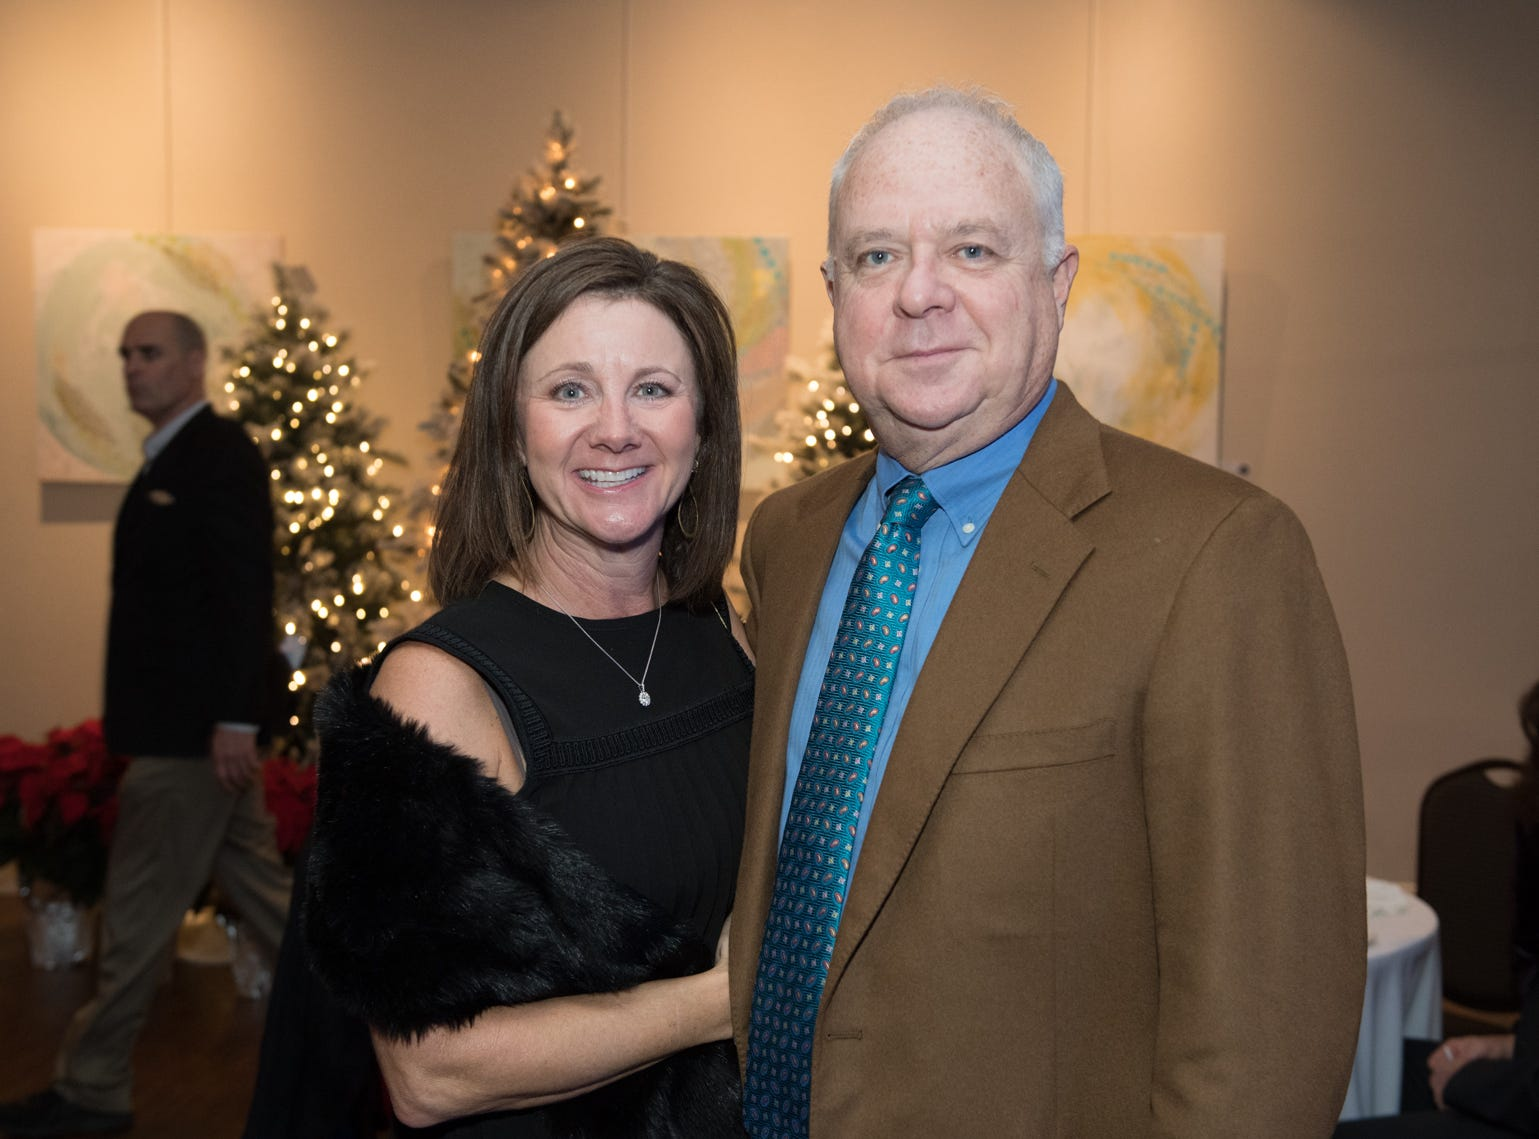 The 2018 official kick-off party for the St. Francis Festival of Trees put everyone into the holiday spirit. The gorgeous collection of trees decorated from wonderful sponsors across the upstate was presented by the St. Francis Foundation. The event featured heavy hors d'oeuvres, specialty drinks and cocktails and live music. All proceeds will benefit the St. Francis Chest Pain Center.